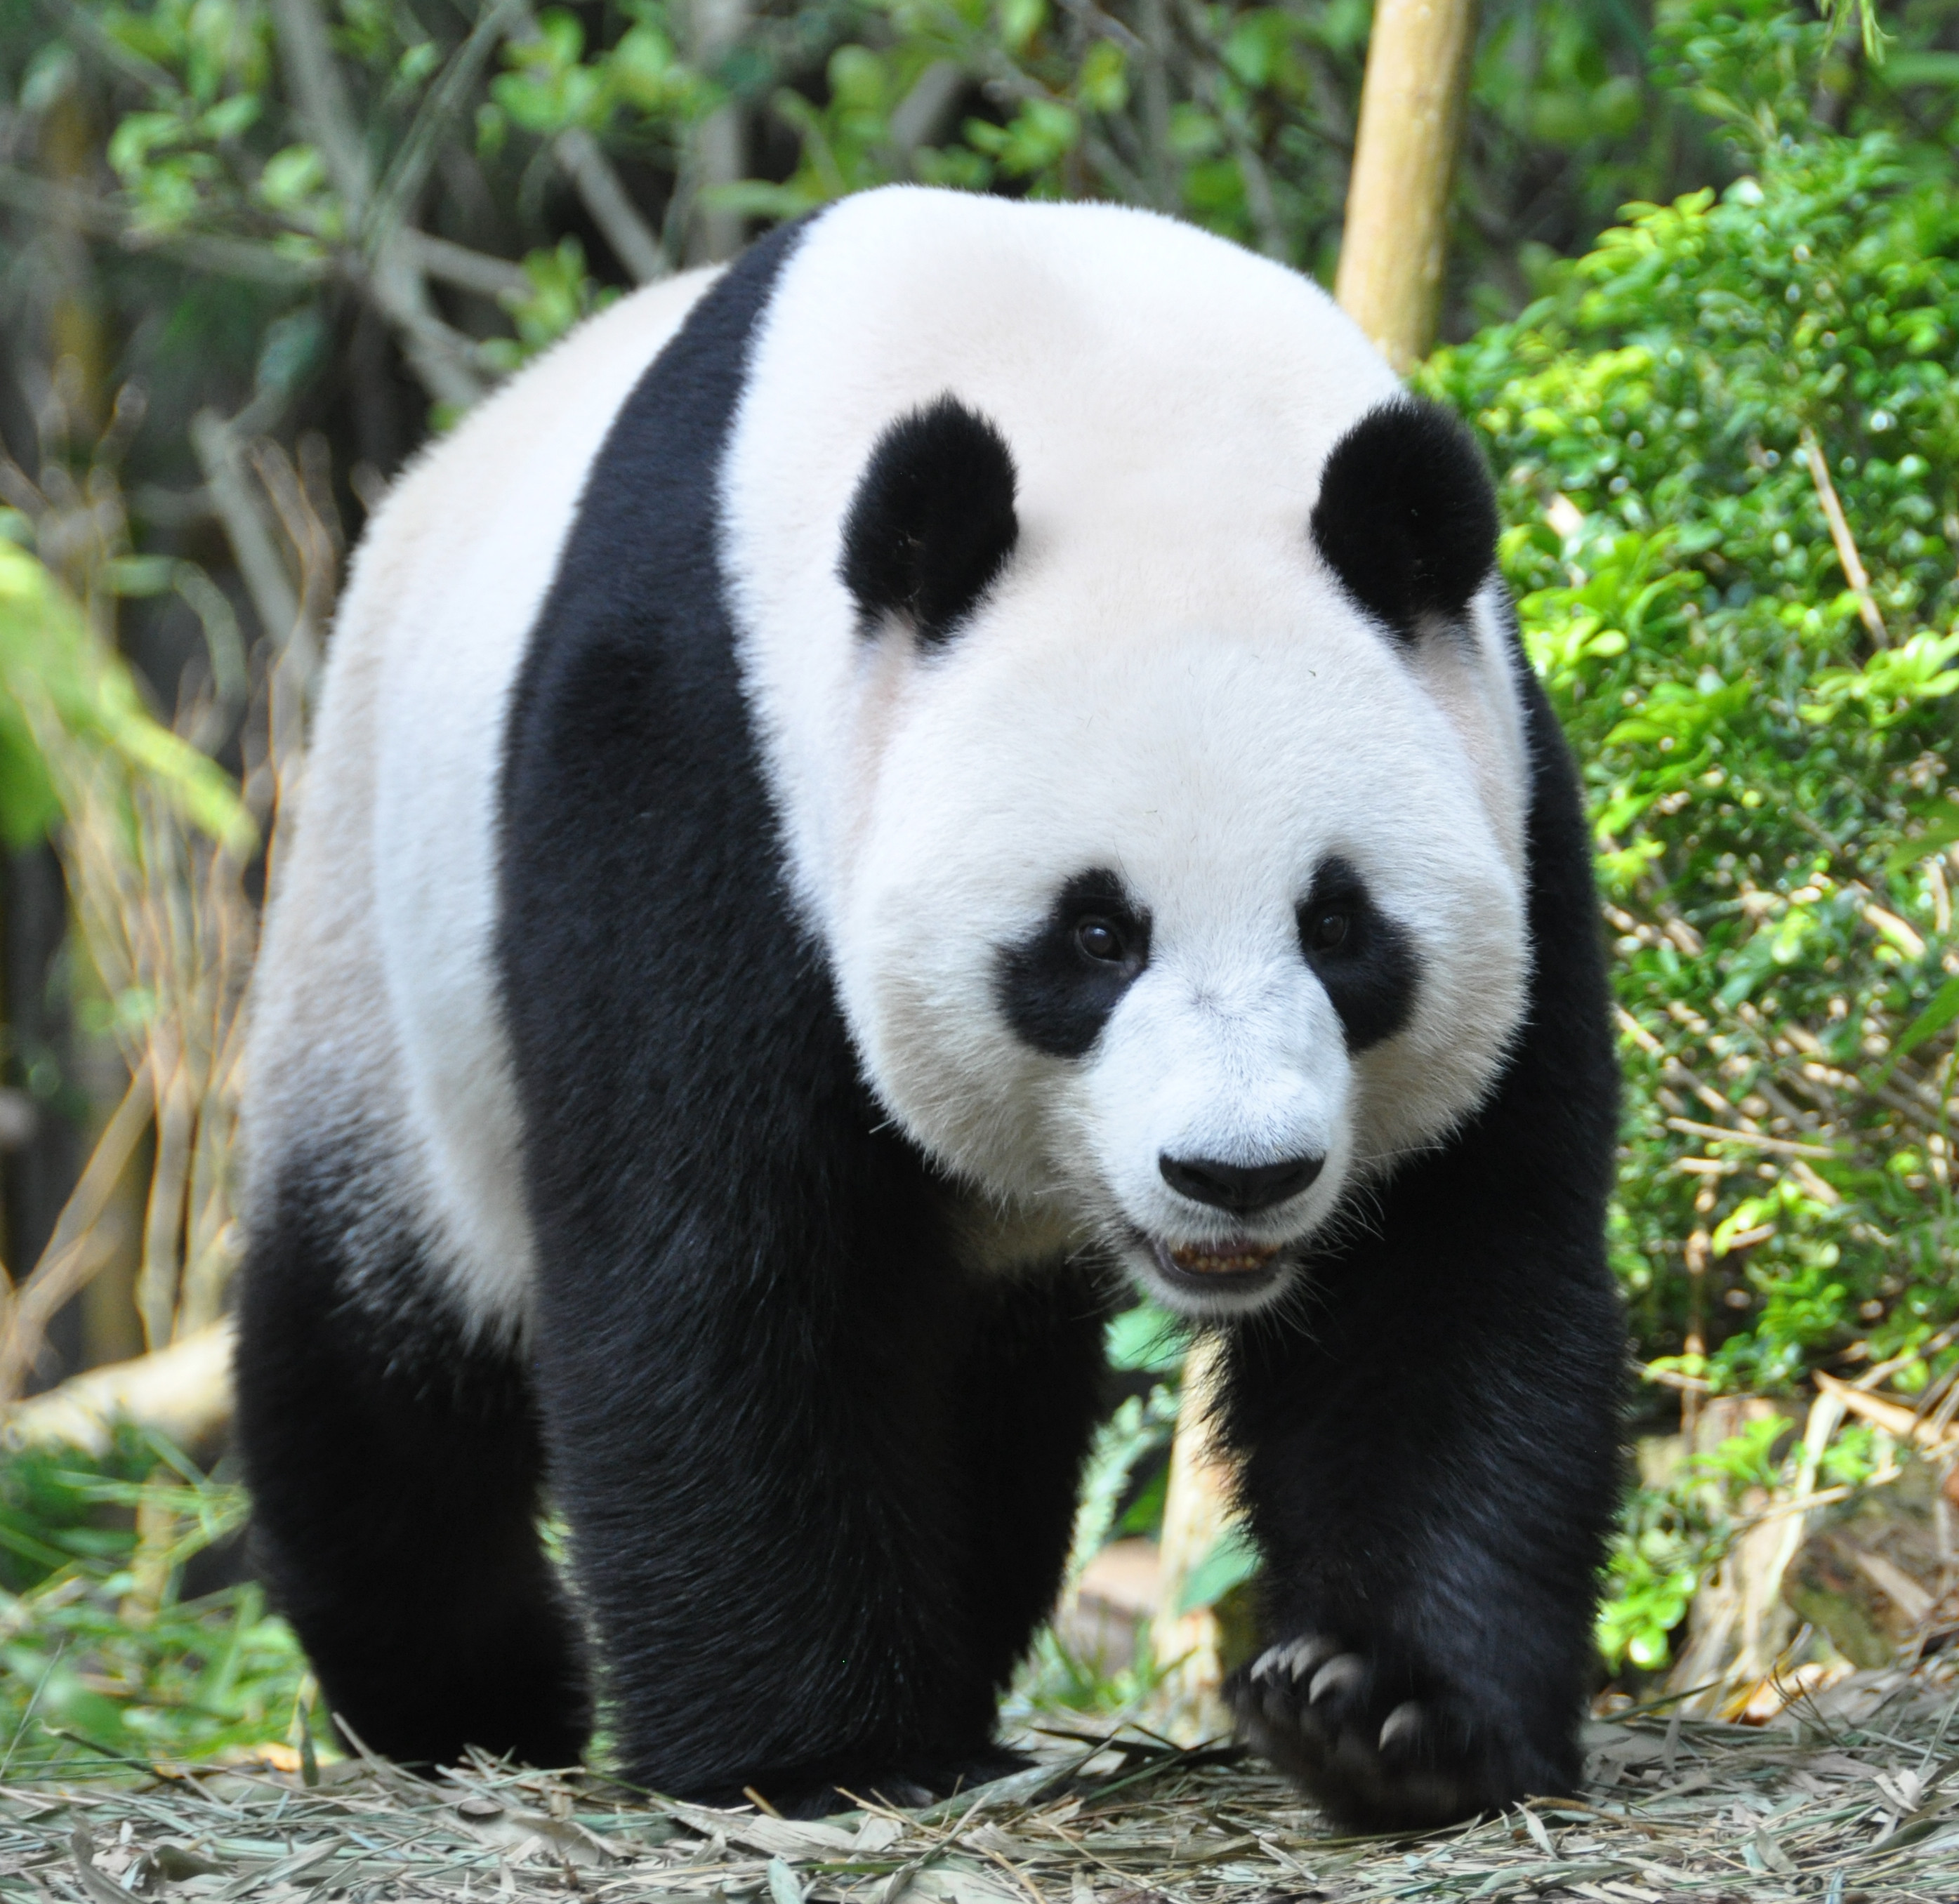 125955 download wallpaper Animals, Panda, Animal, Muzzle, Claws screensavers and pictures for free